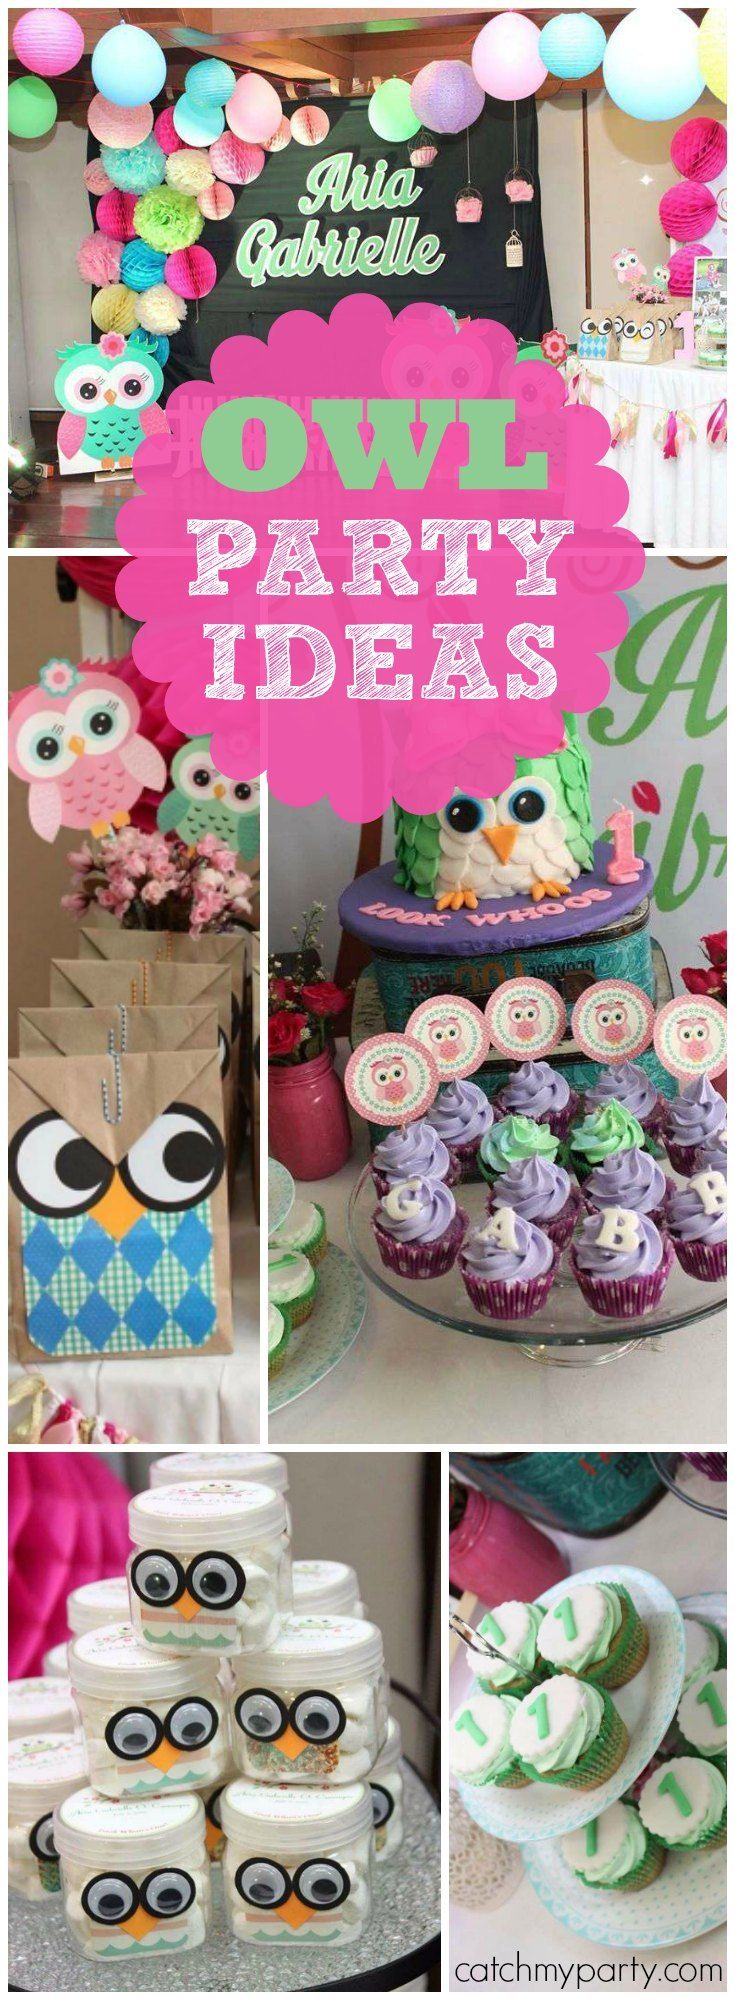 So many cute ideas at this owl themed girl birthday party! See more party ideas at Catchmyparty.com!